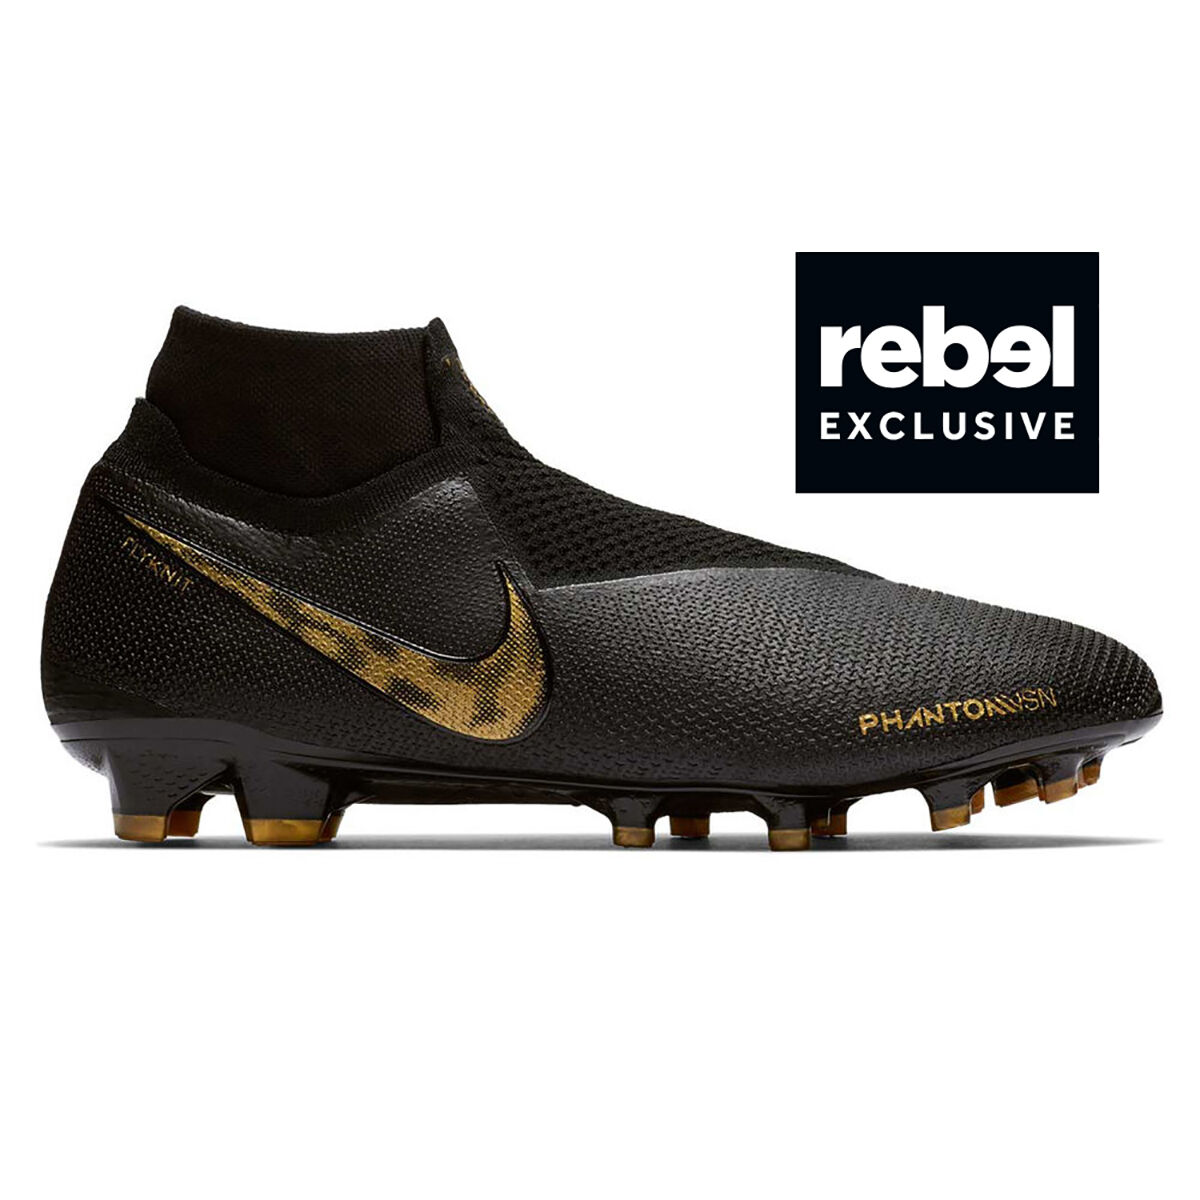 Best Football Boots: Nike, Adidas and top UK brands for men